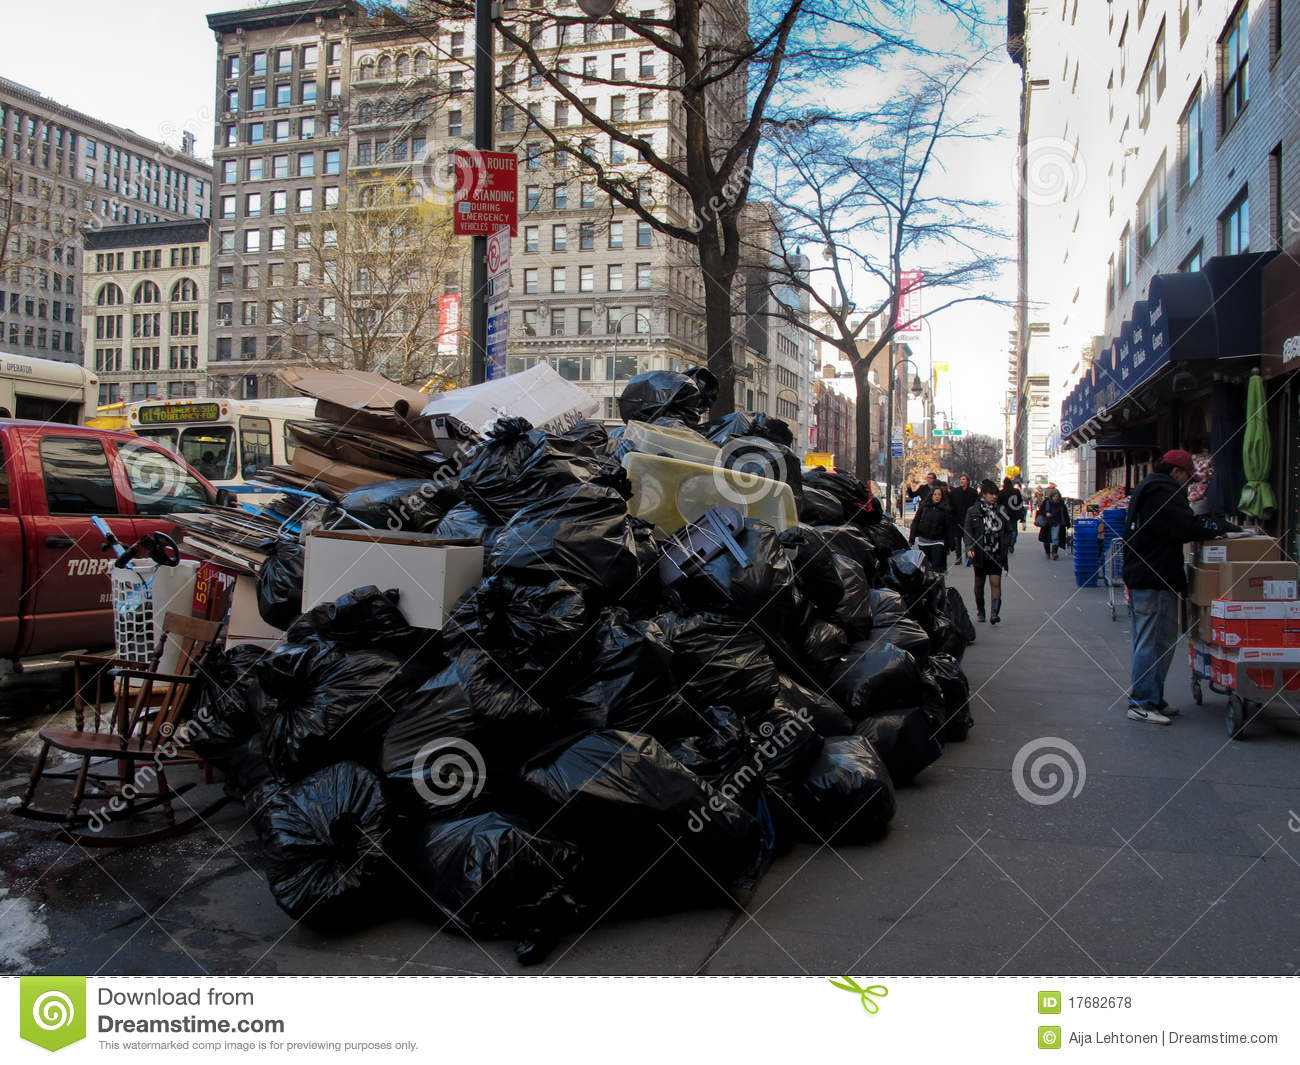 Texting While Driving >> Pile Of Trash On Street In New York City Editorial Stock Photo - Image: 17682678